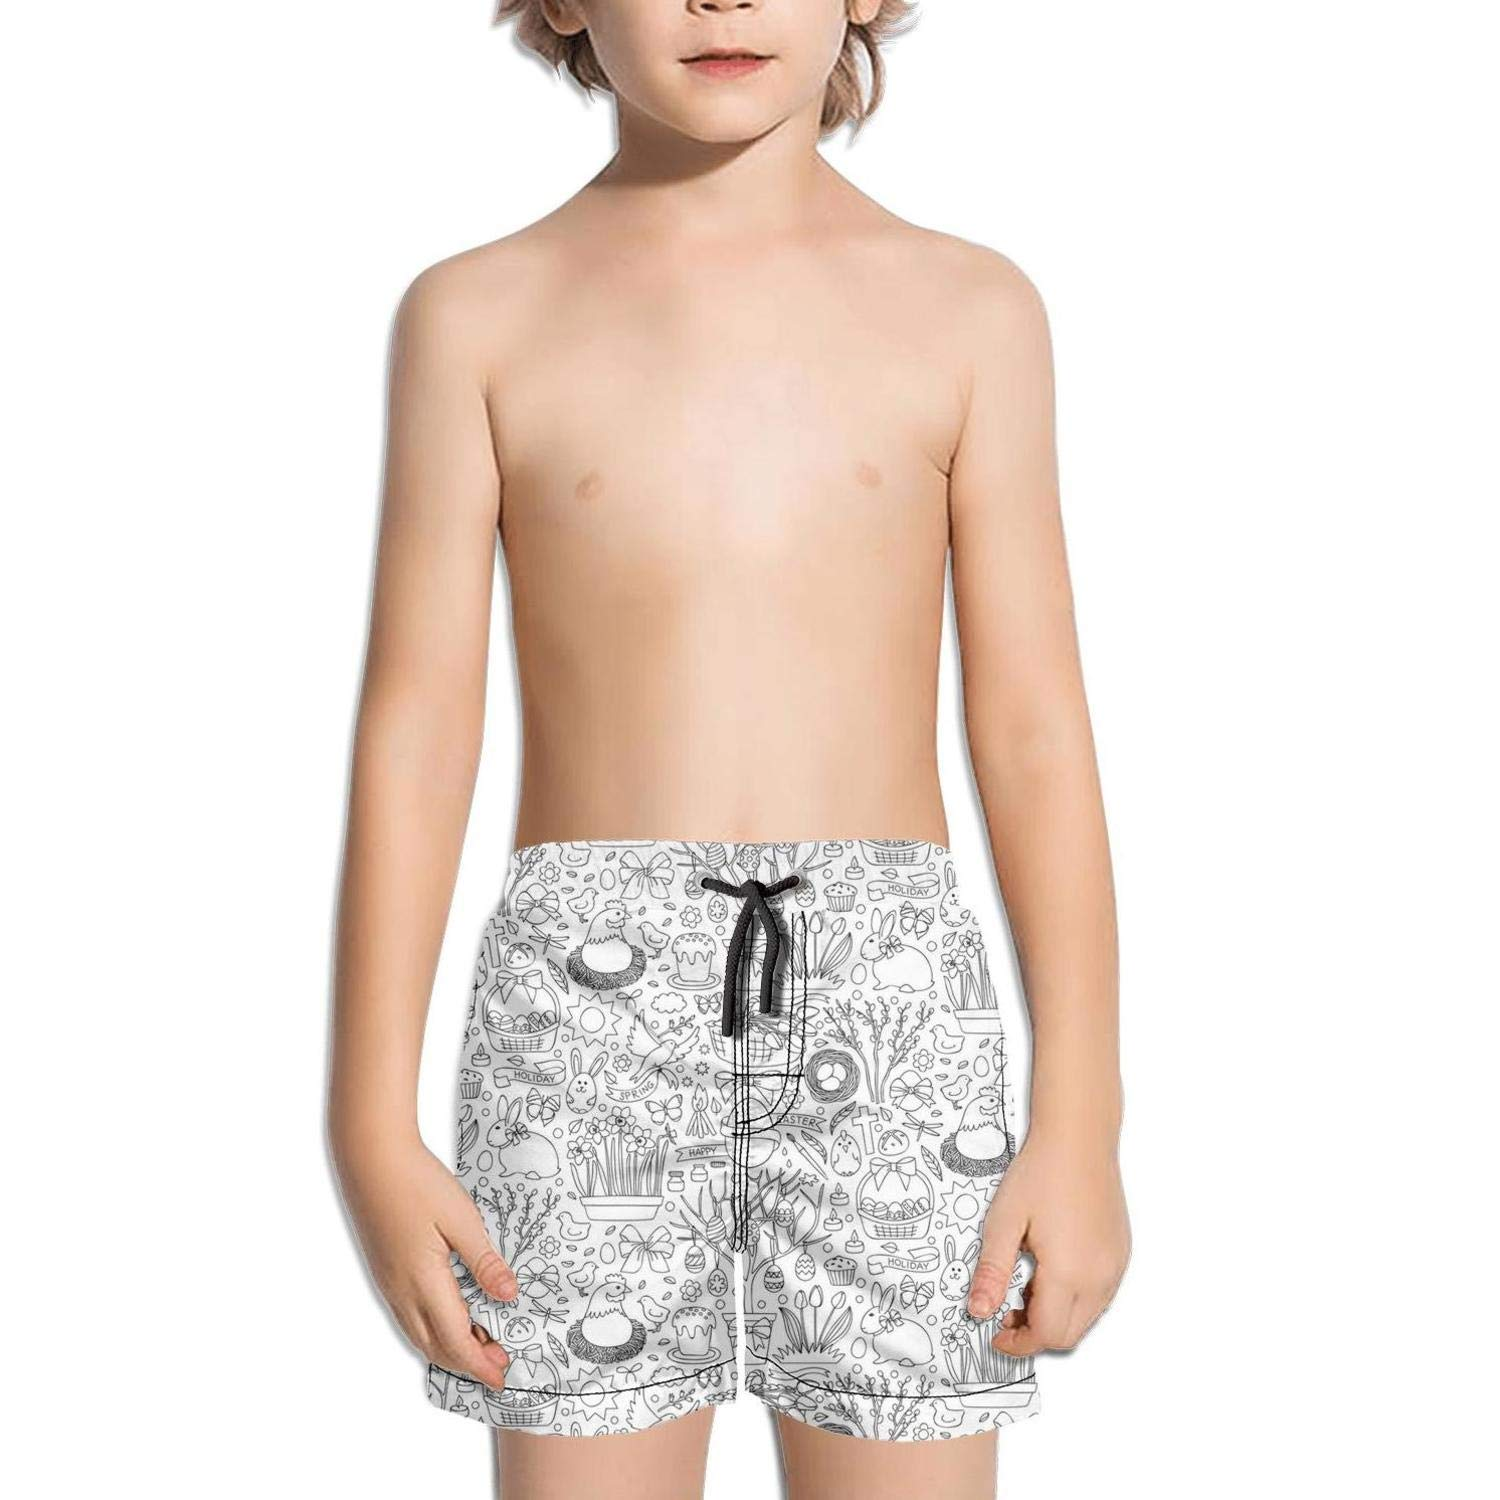 SGZVASDVFXF Flowers Black Easter Eggs Flowers Swimming Trunks Boys Beach Stretch Board Adjustable Shorts with Pockets